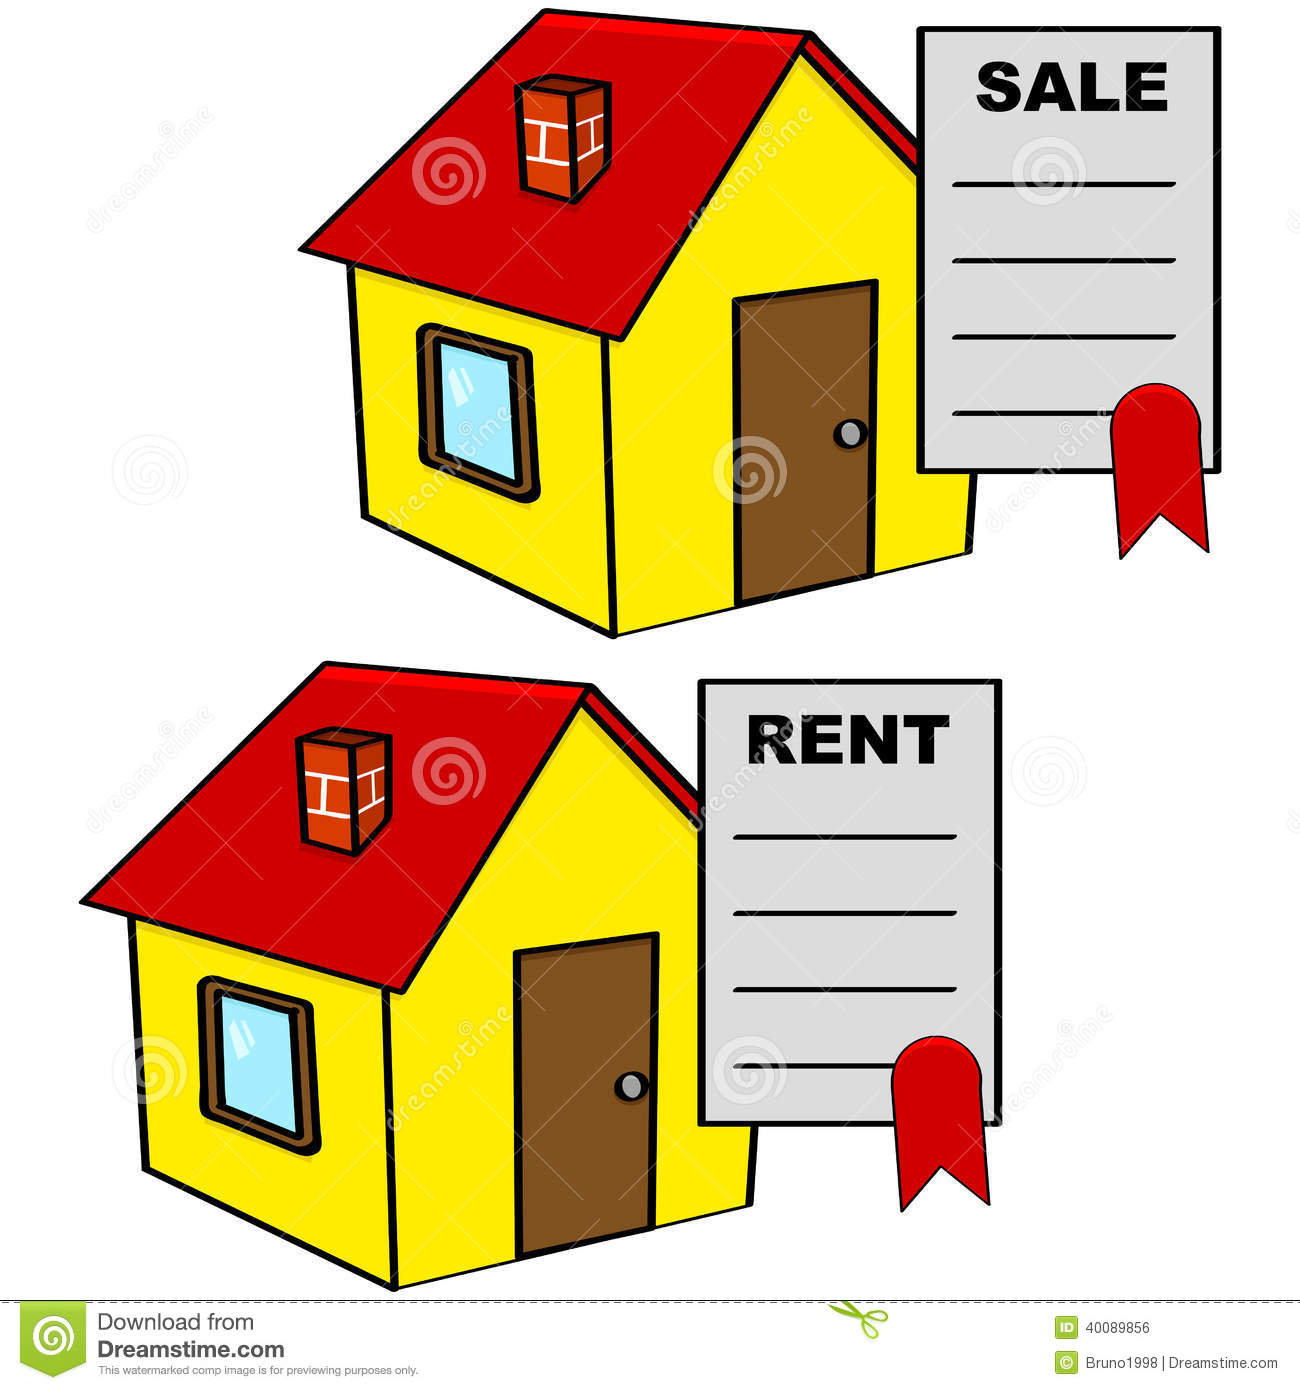 House For Rent Clip Art: House For Sale And For Rent Stock Illustration